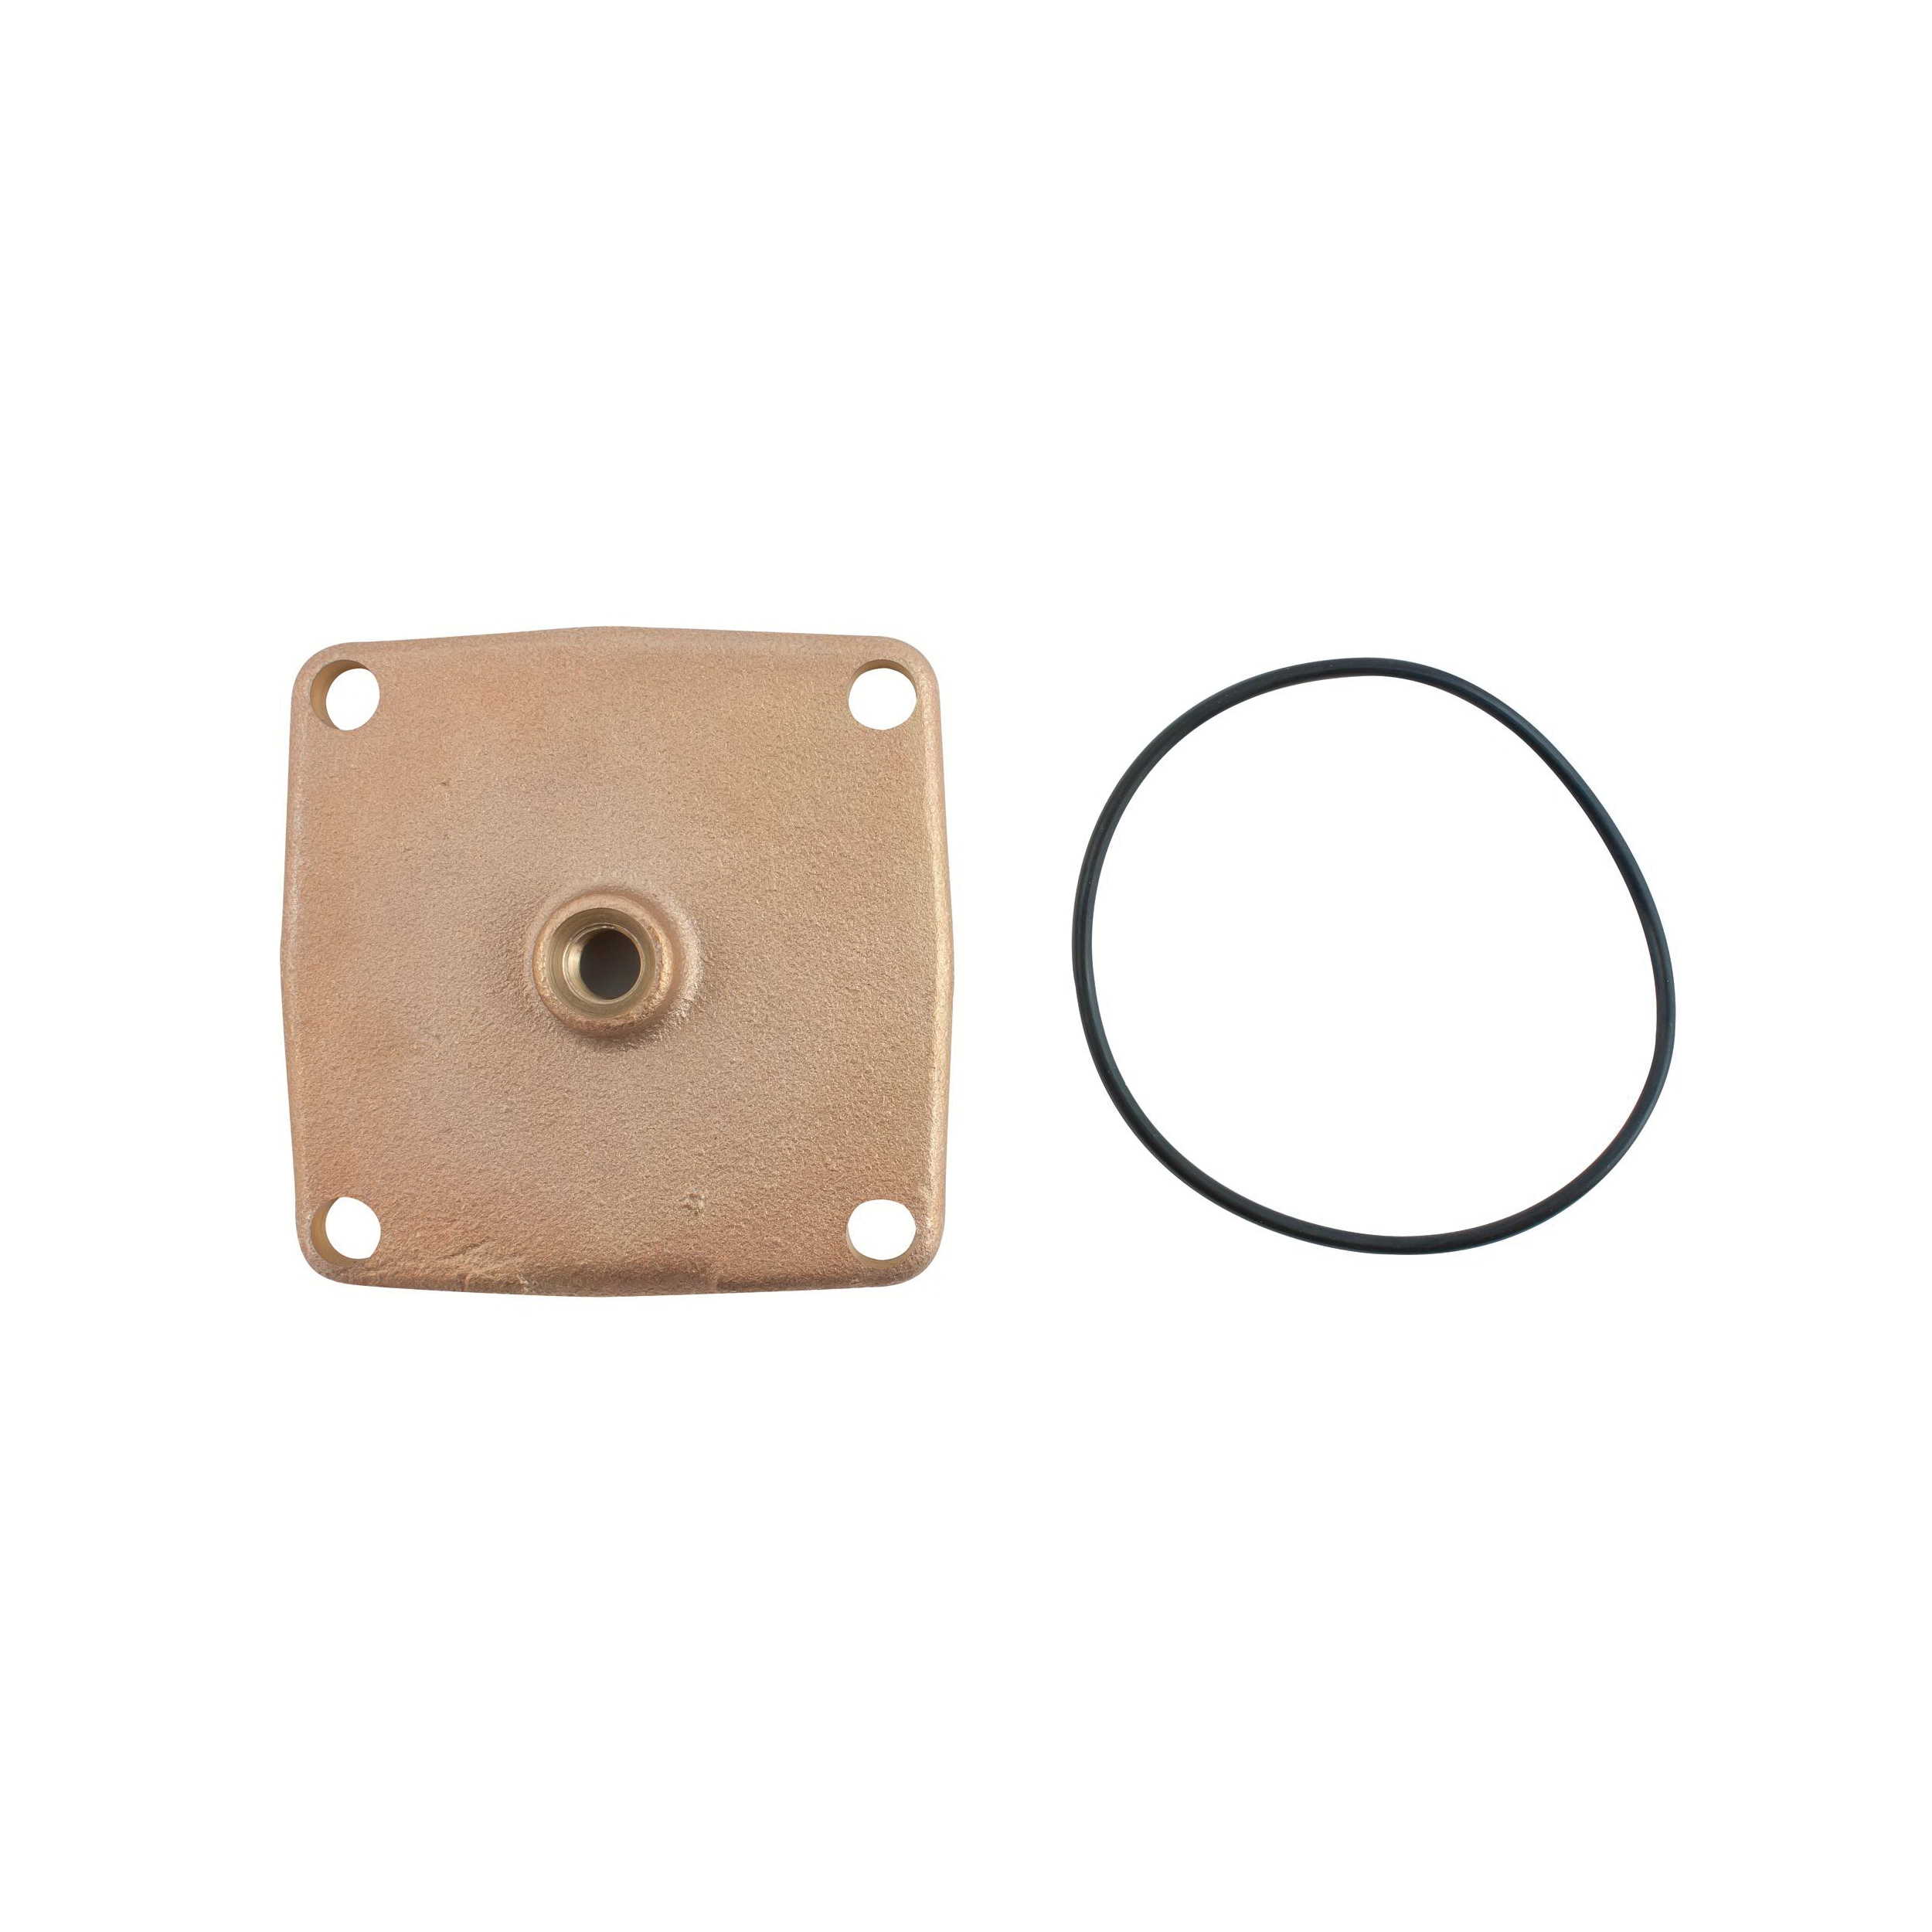 WATTS® 0794004 Cover Kit, For Use With LF007 Series 3/4 in Lead Free Double Check Valve Assemblies